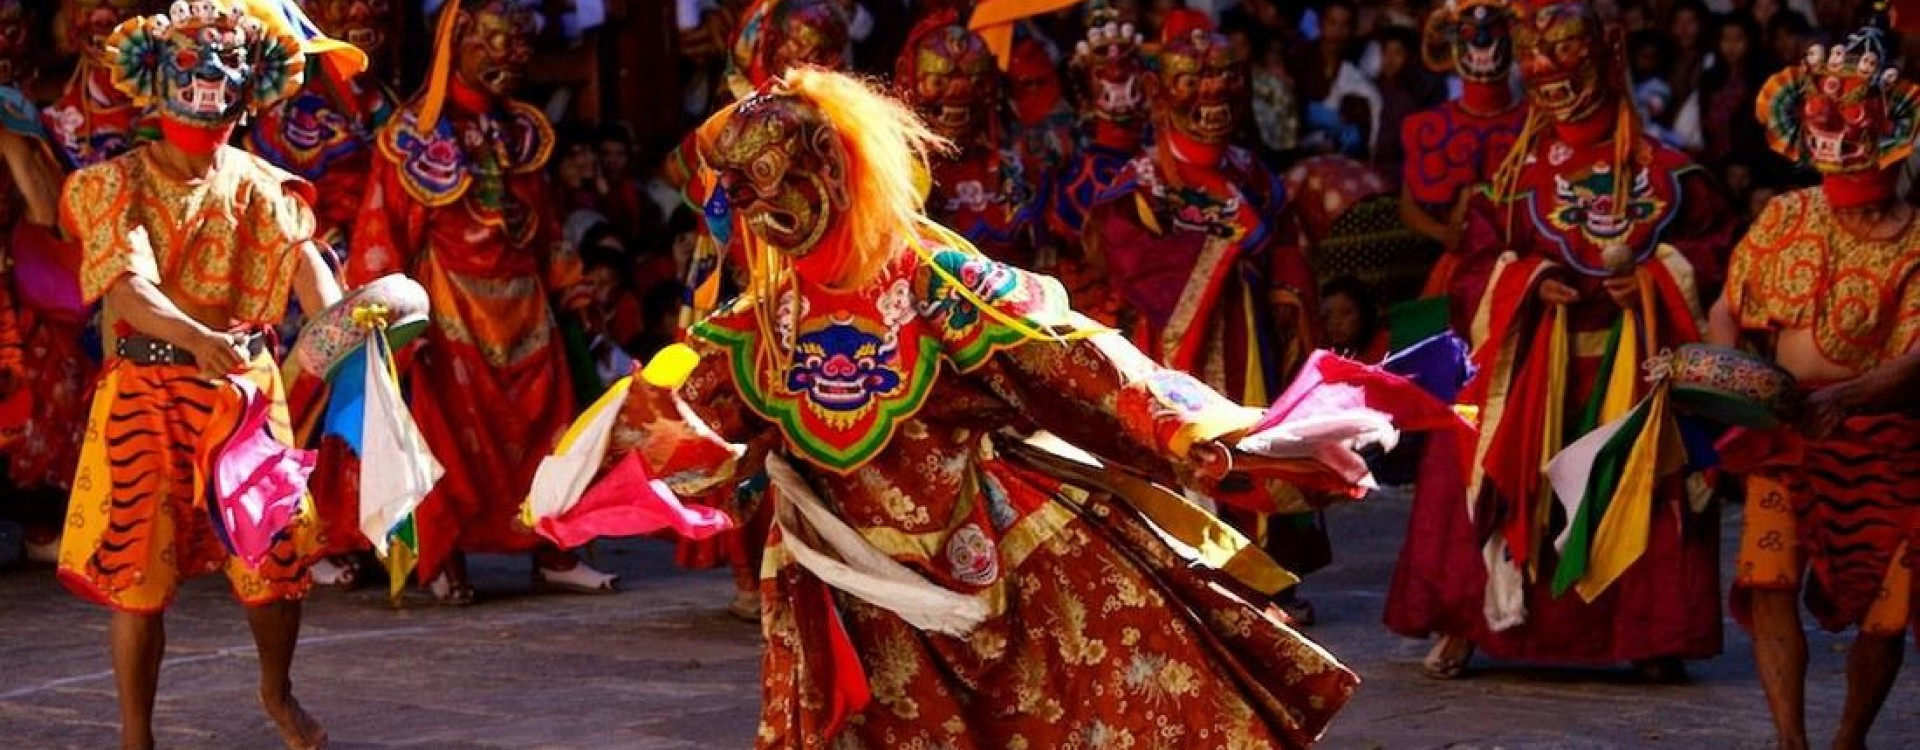 Destination Himalayan Kingdom of Bhutan